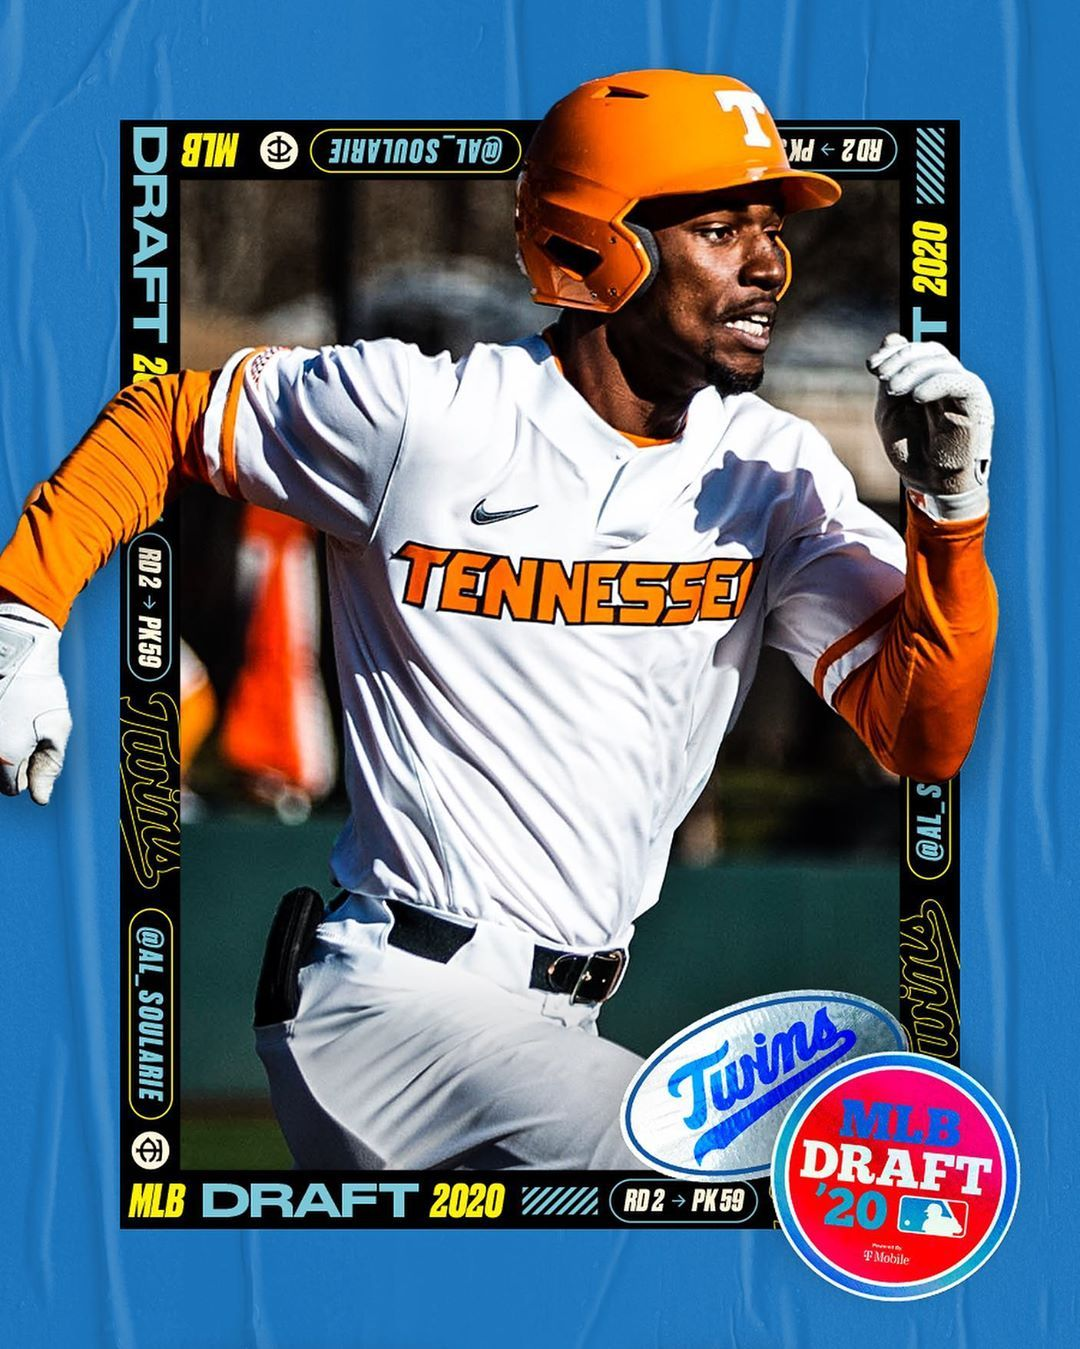 Minnesota Twins With The 59th Pick In The Mlbdraft We Selected Alerick Soularie Welcome To Th In 2020 Minnesota Twins Twins Minnesota